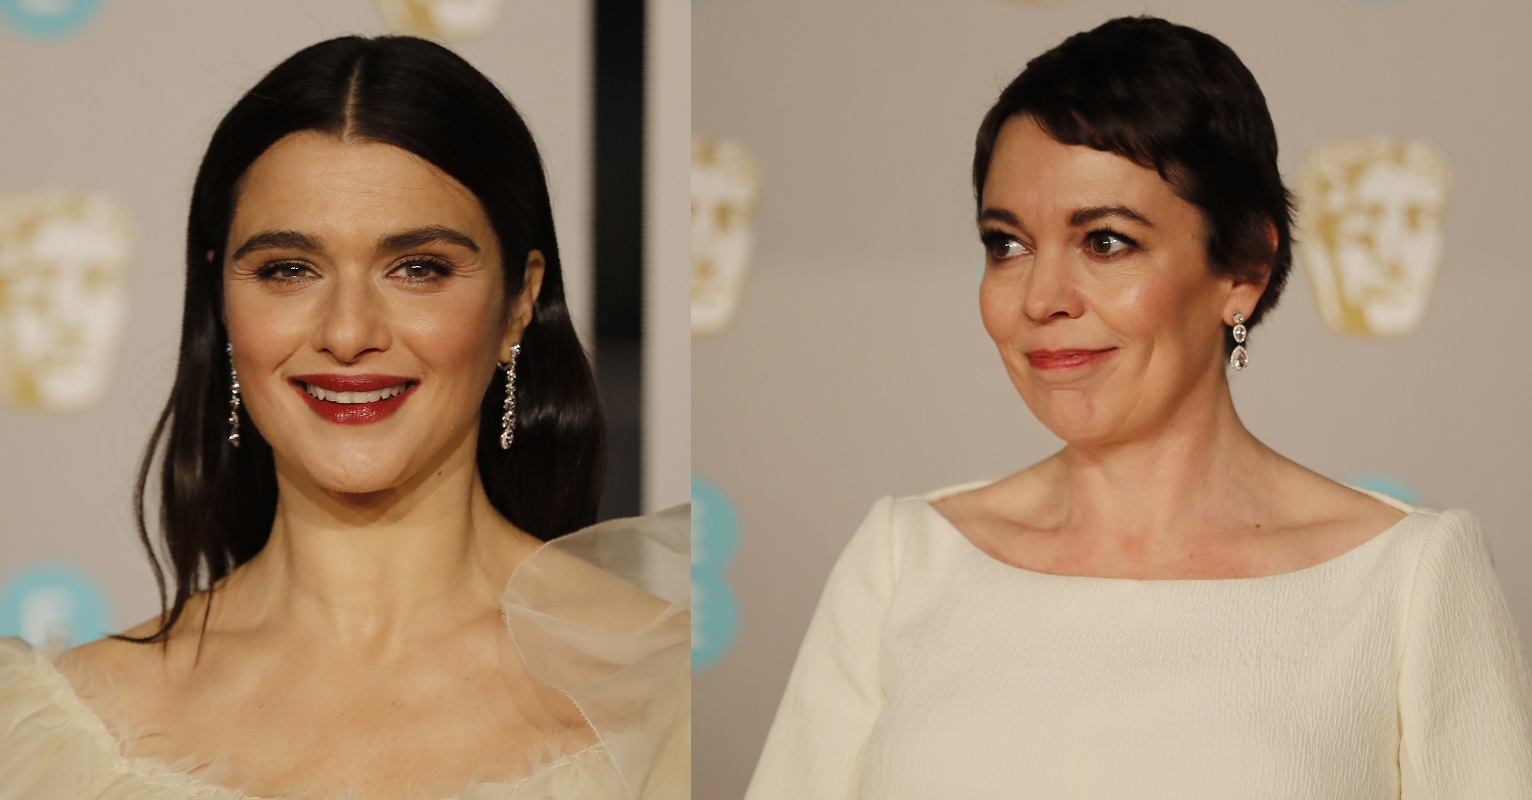 British actors Rachel Weisz and Olivia Colman pose on the red carpet upon arrival at the BAFTAs at the Royal Albert Hall in London on February 10, 2019.